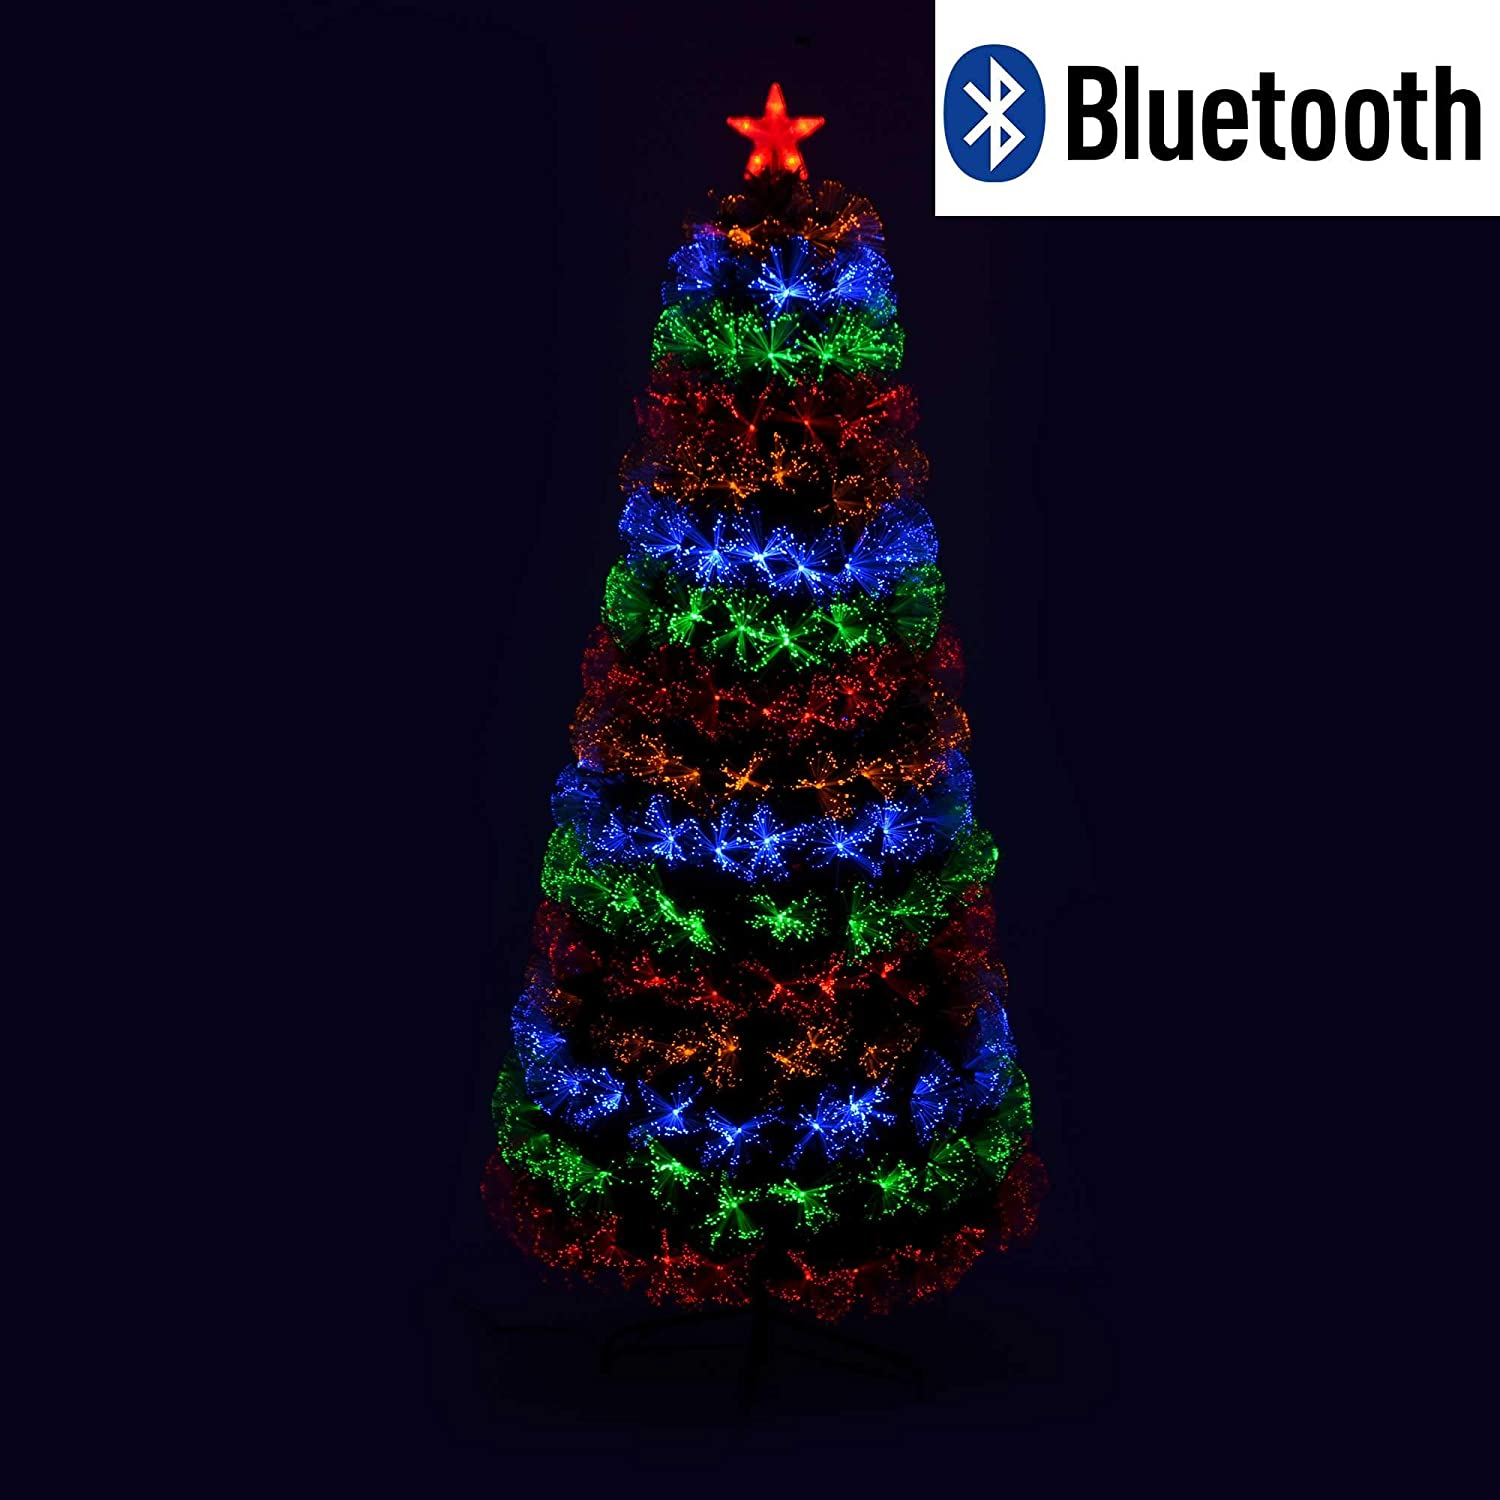 Shatchi 6055-FIBRE-OPTIC-BLUETOOTH-TREE-2,1 m Smart App Bluetooth Big 2,1 m Pre-illuminato LED fibra ottica 8 modalit/à//timer//luci decorazione natalizia per la casa 210 cm verde